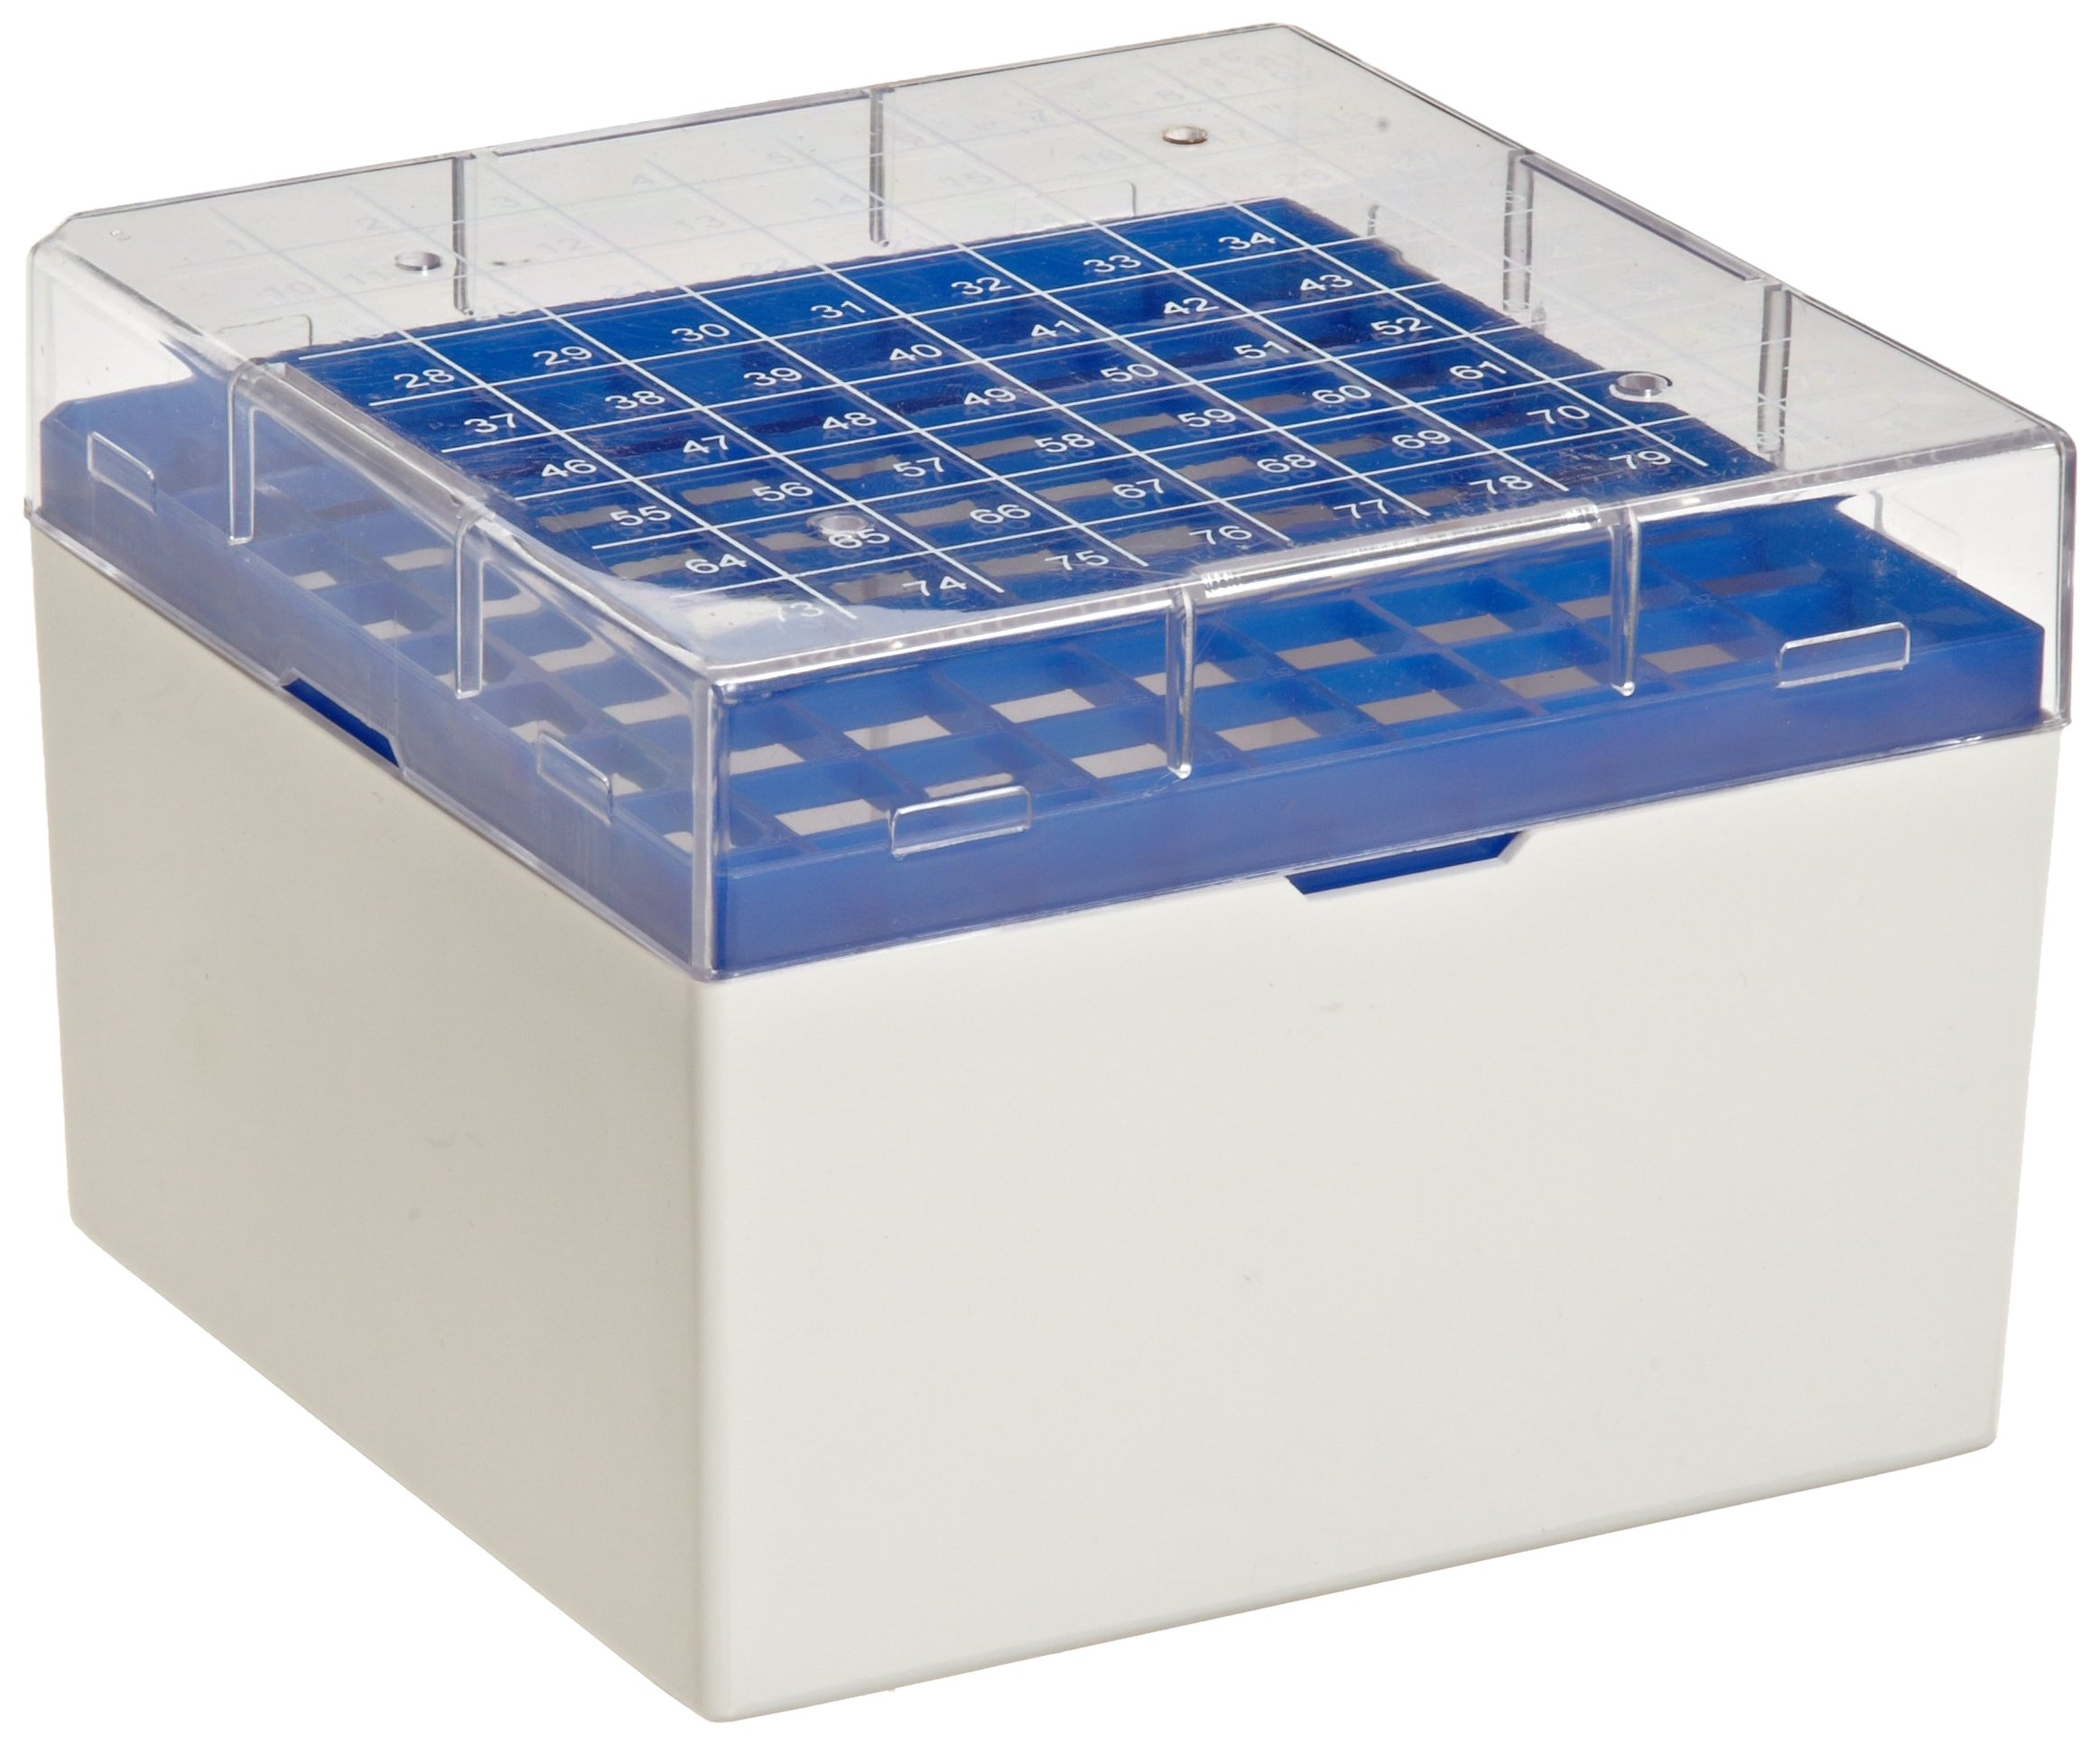 Bel-Art F18849-0002 Cryo-Safe Vial Storage Box; 81 Places, 5.0ml, Plastic, 5¼ x 5¼ x 3¾ in. (Pack of 4)